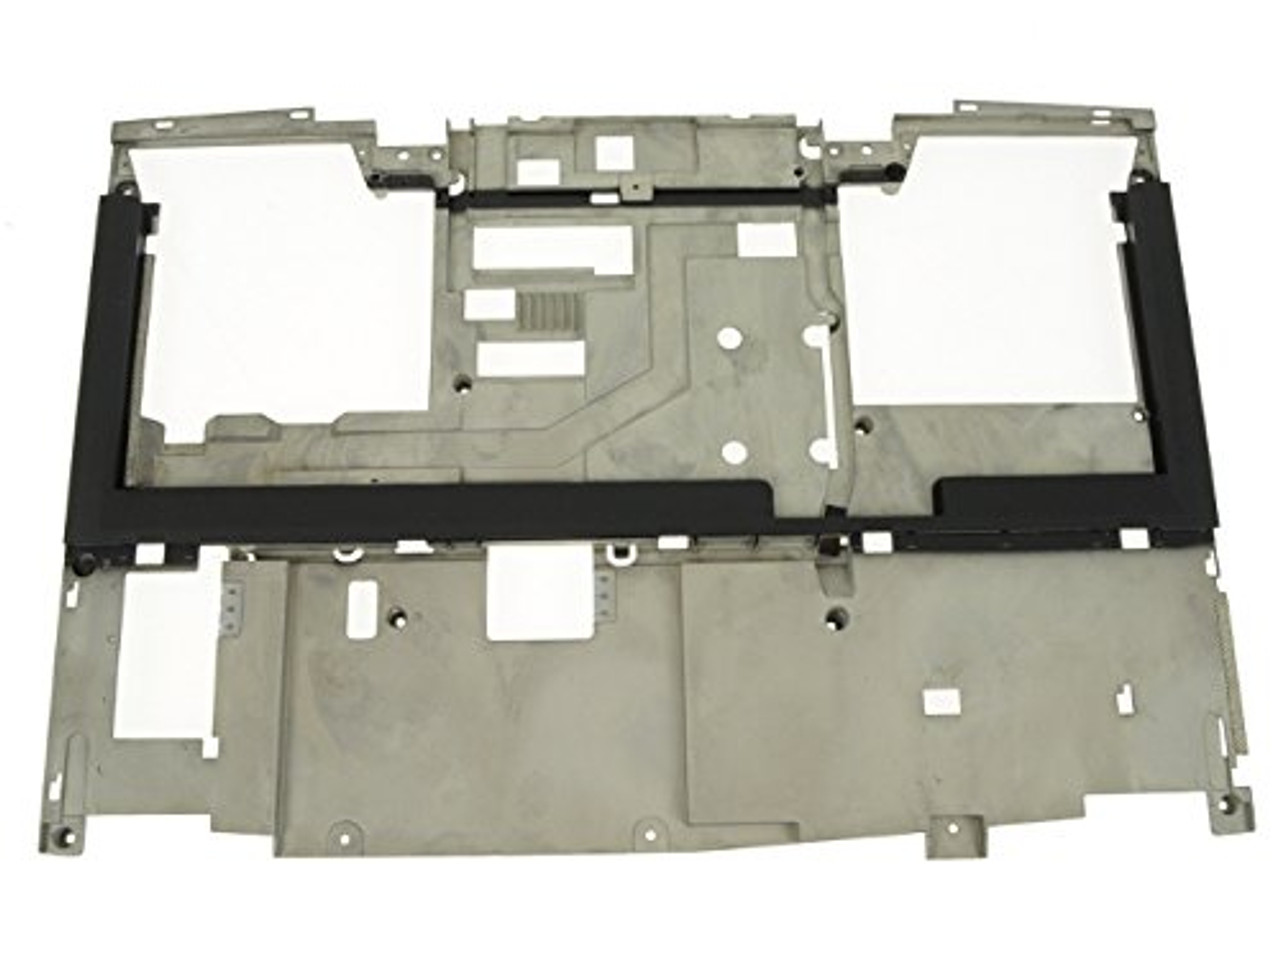 Alienware M17x Keyboard Tray Frame Cover Assembly - C459N